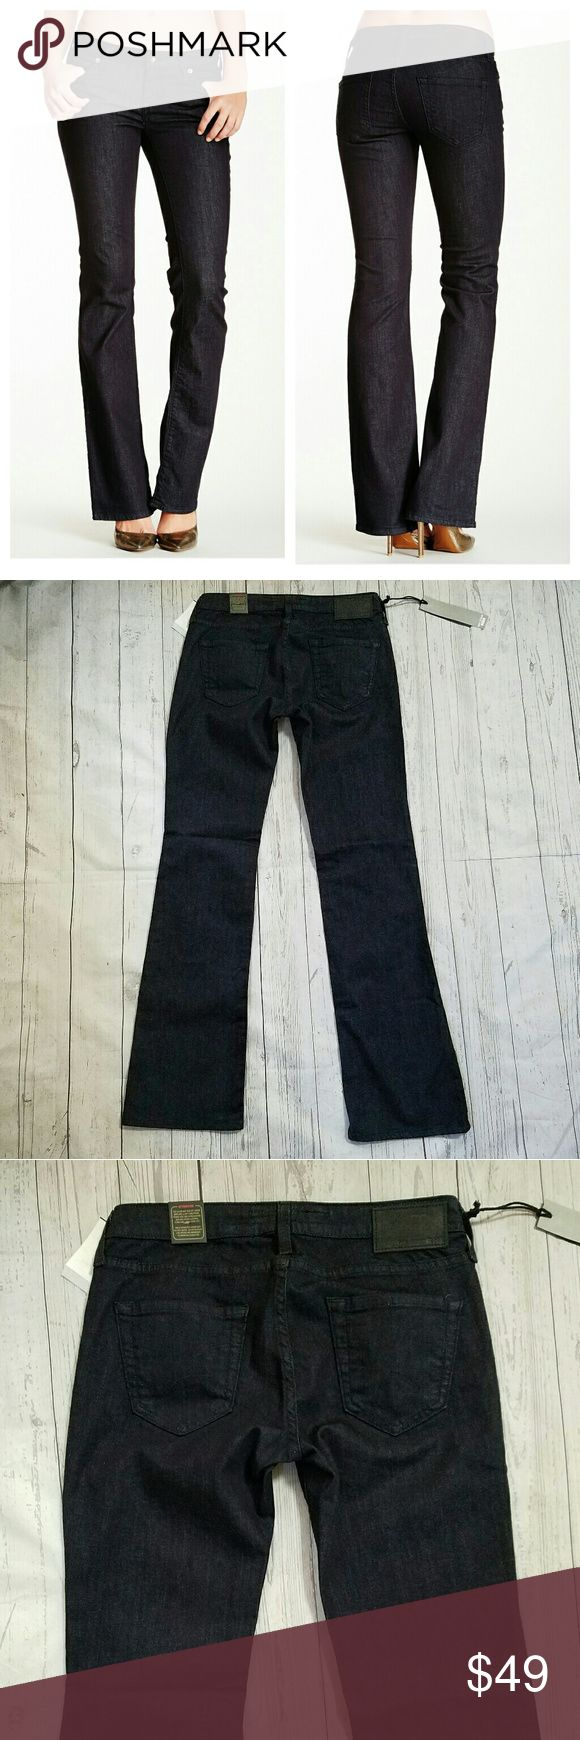 Big Star Pride Boot Cut Jeans 28 x 33 Callisto wash, low-rise jeans. Zip fly and button closure. 5 pocket. 98% cotton 2% spandex. 15.5 inches across the top of the waist, 7.5 inch rise, 18.5 inches across the hips, 33 inch inseam. Big Star Jeans Boot Cut